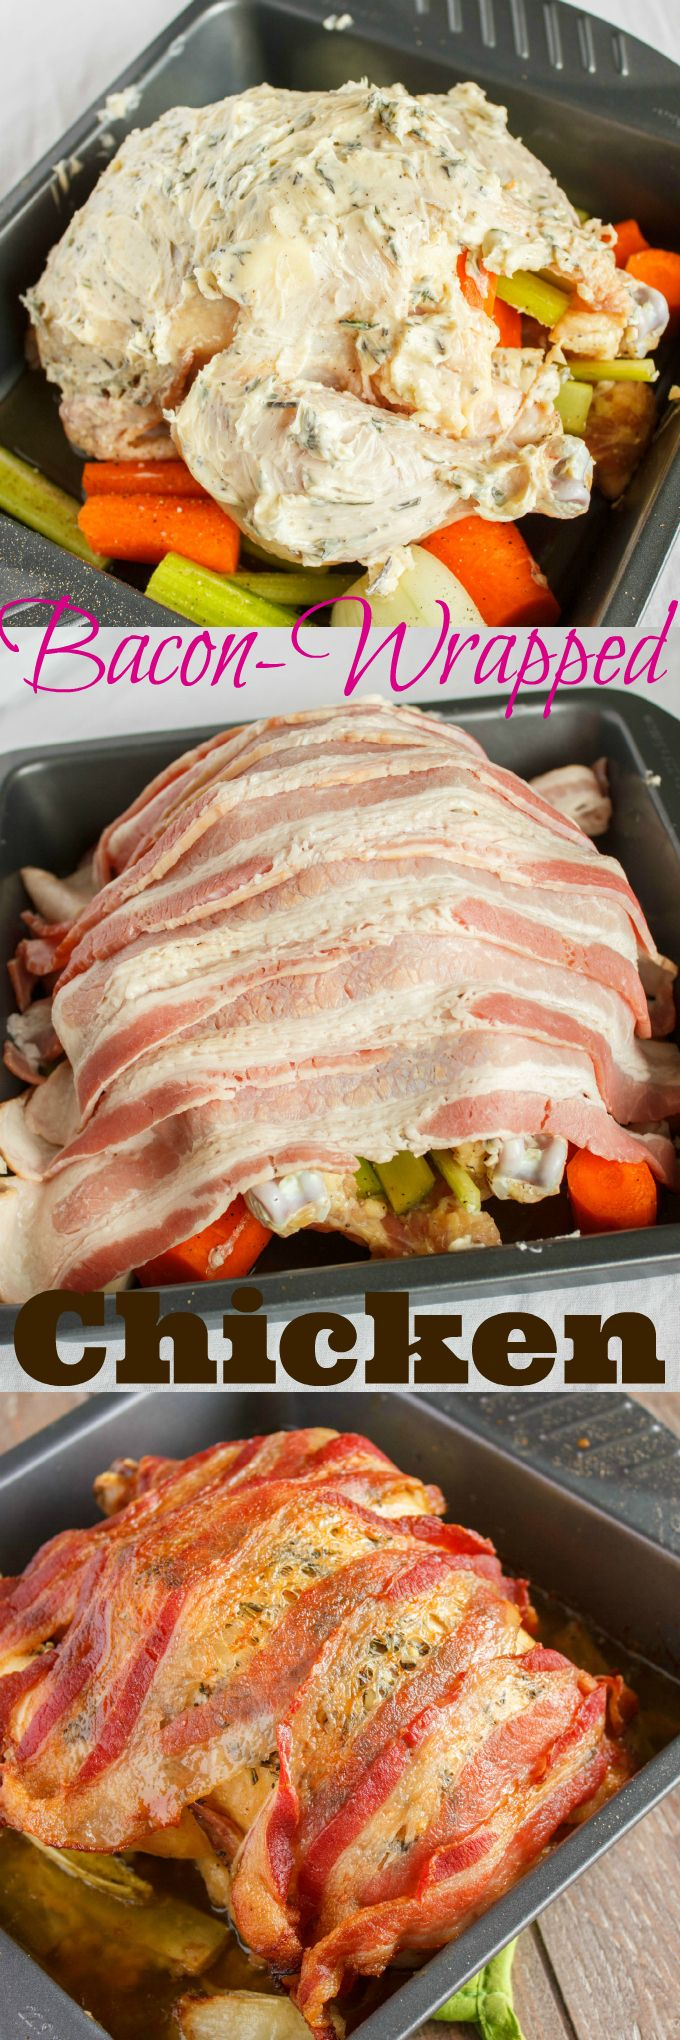 Bacon Wrapped Whole Chicken with Maple-Herb Butter | #chicken #bacon #dinner | http://thecookiewriter.com